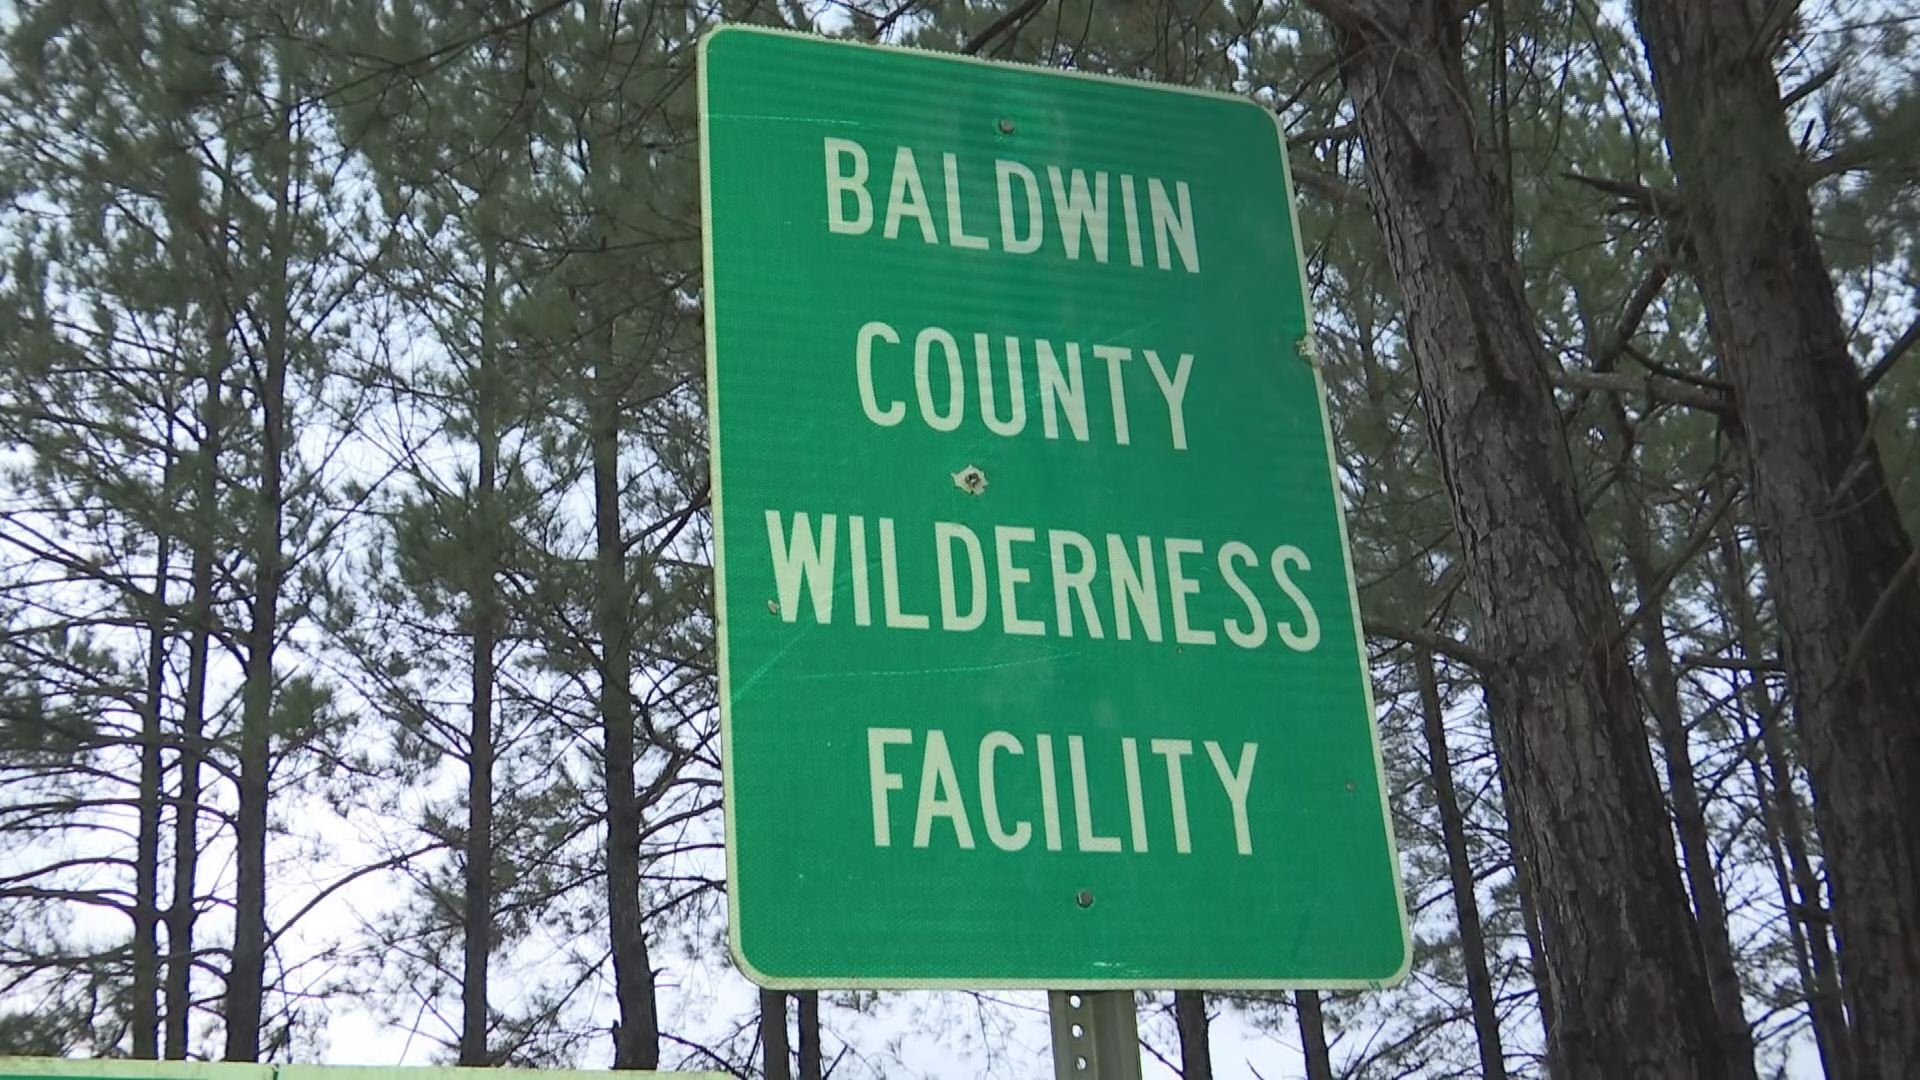 Sheriff's investigators say a female staff member was raped by a 15-year-old male camper on a nature trail at the Baldwin County Residential Wilderness Facility Tuesday, December 22.